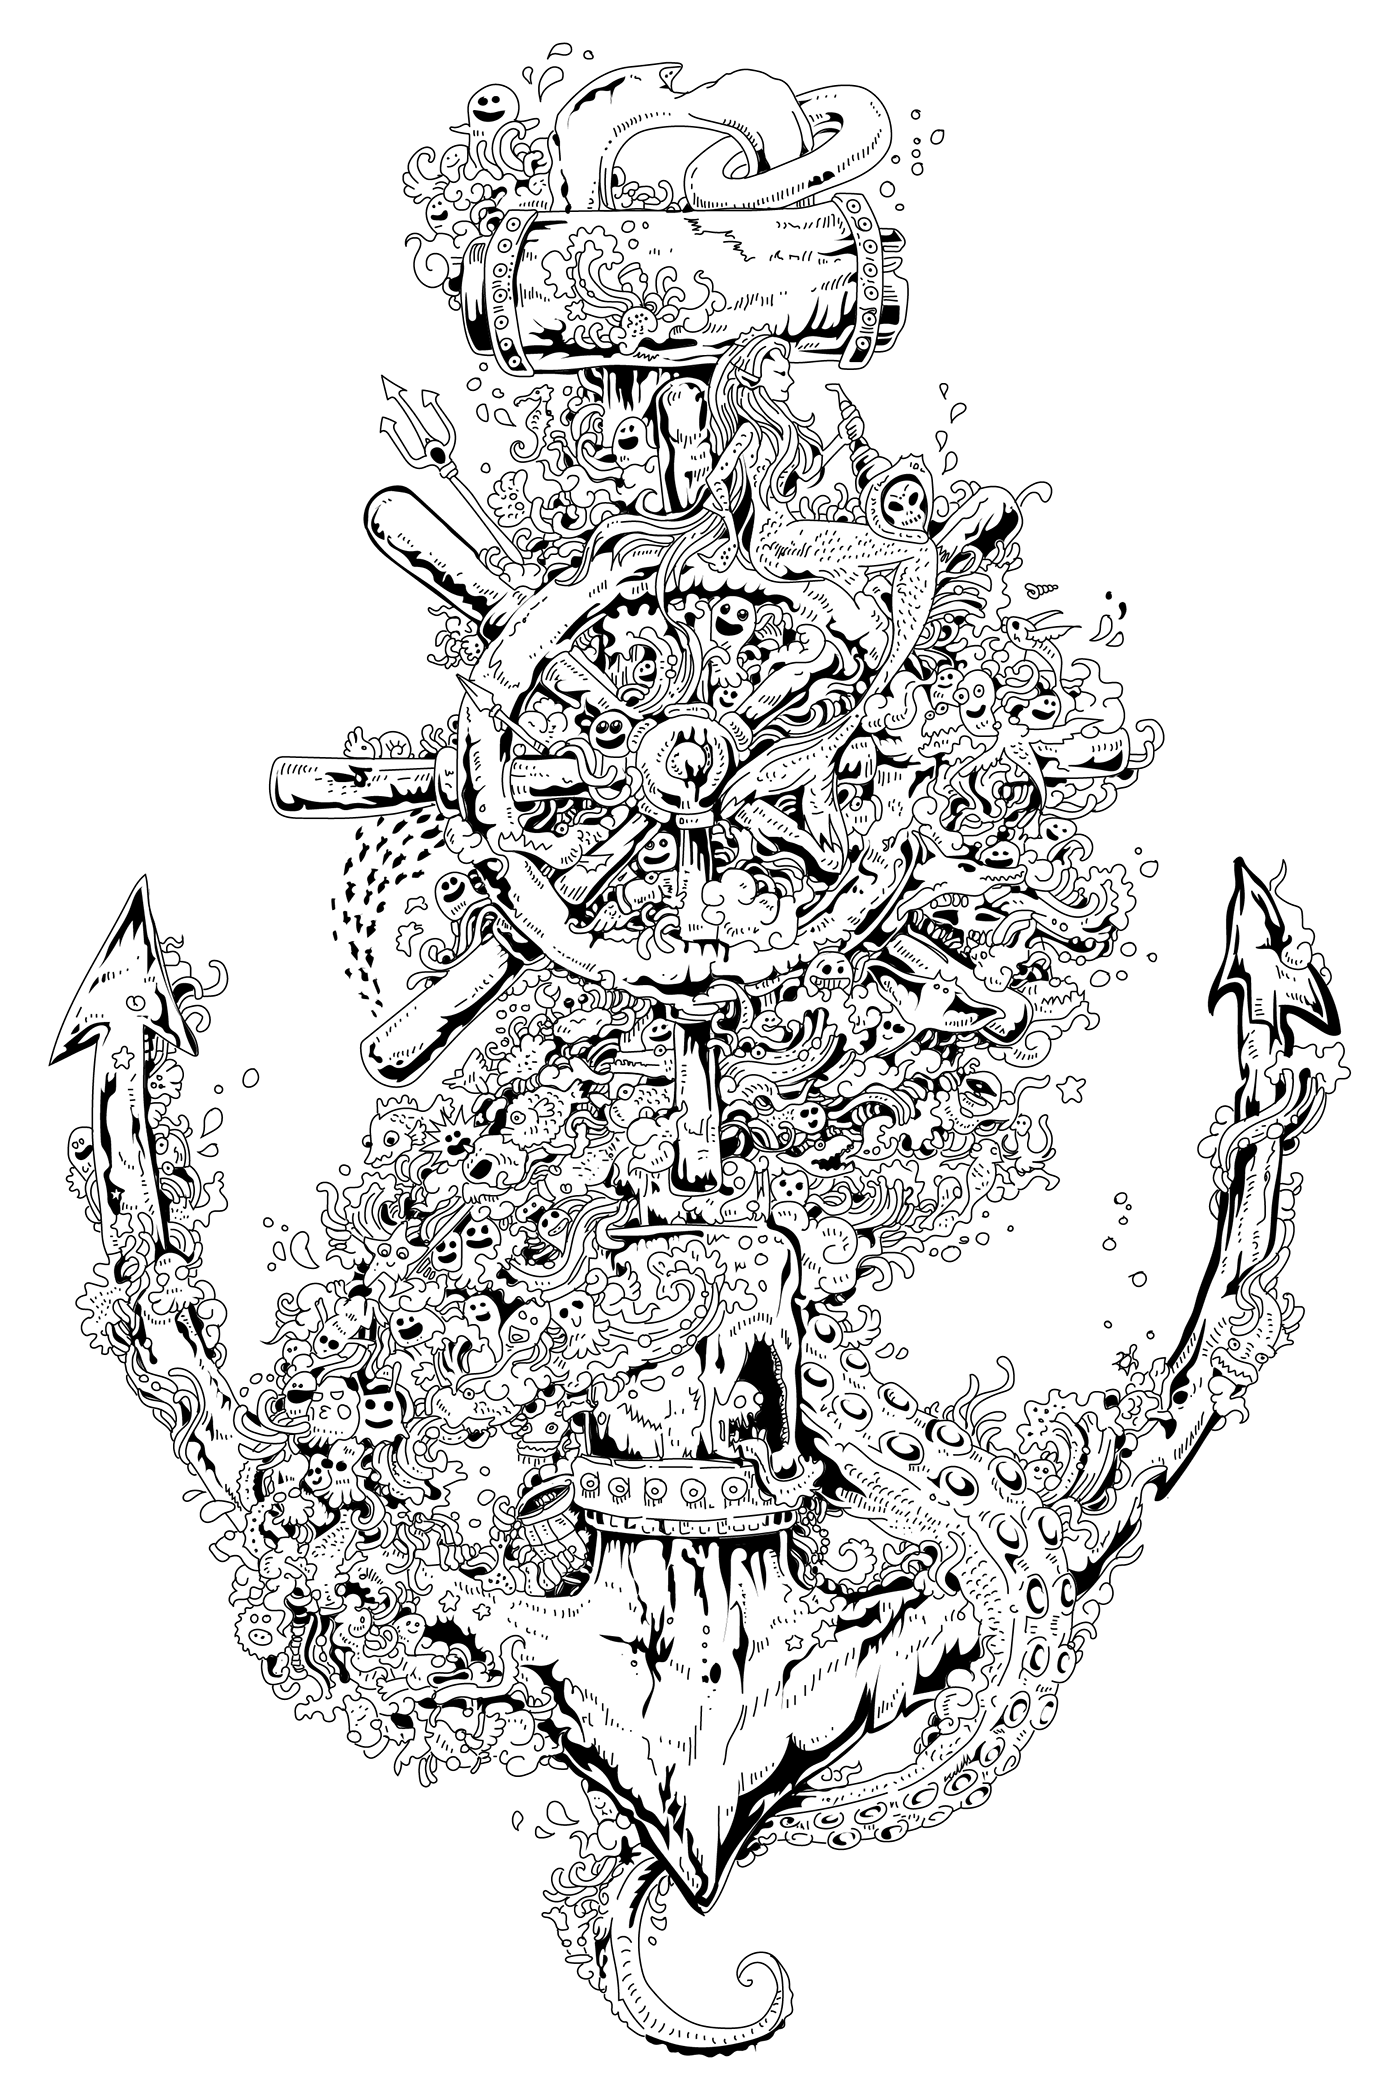 Anchor by Kerby Rosanes on Behance